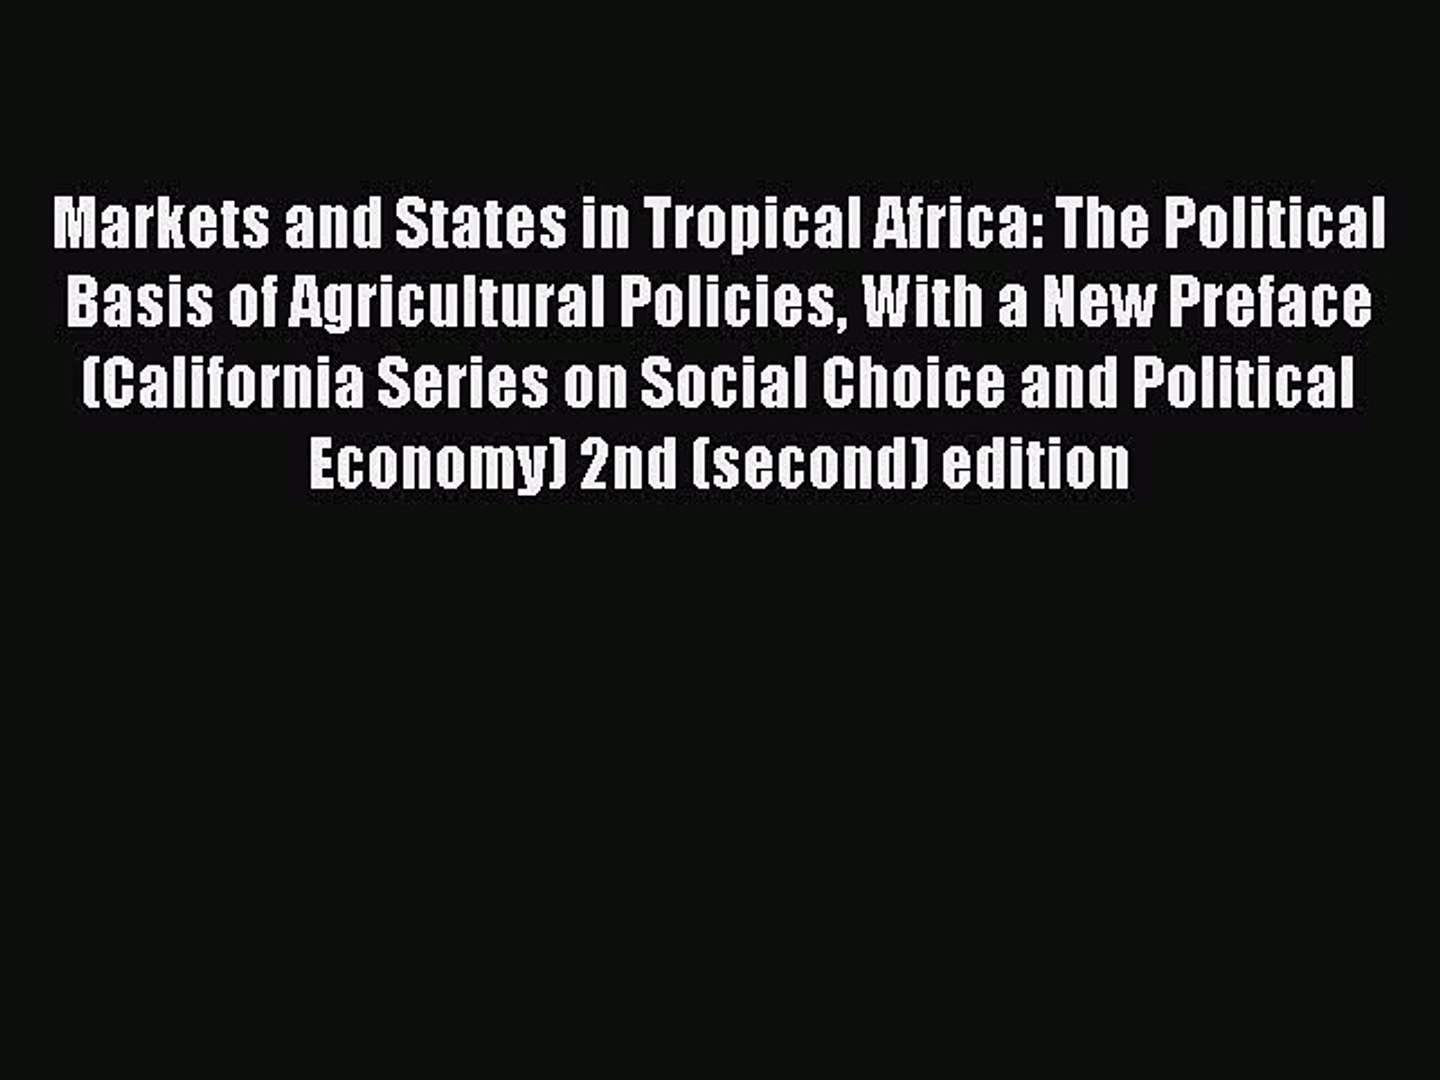 Read Markets and States in Tropical Africa: The Political Basis of Agricultural Policies: With